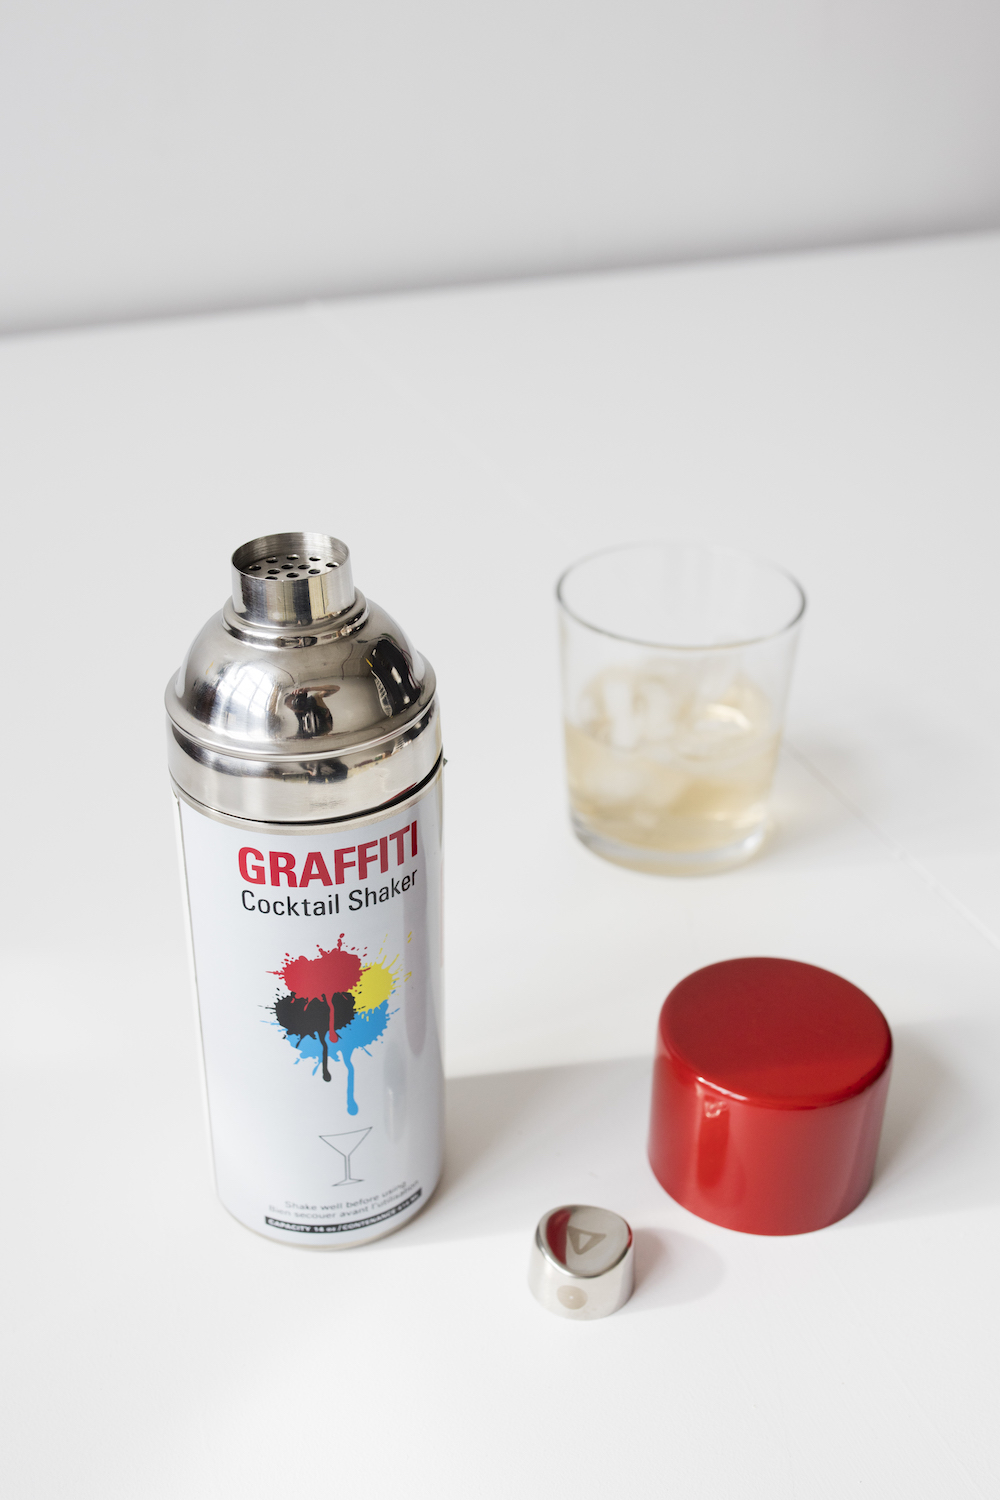 Graffiti Cocktail Shaker | alvaluz.com